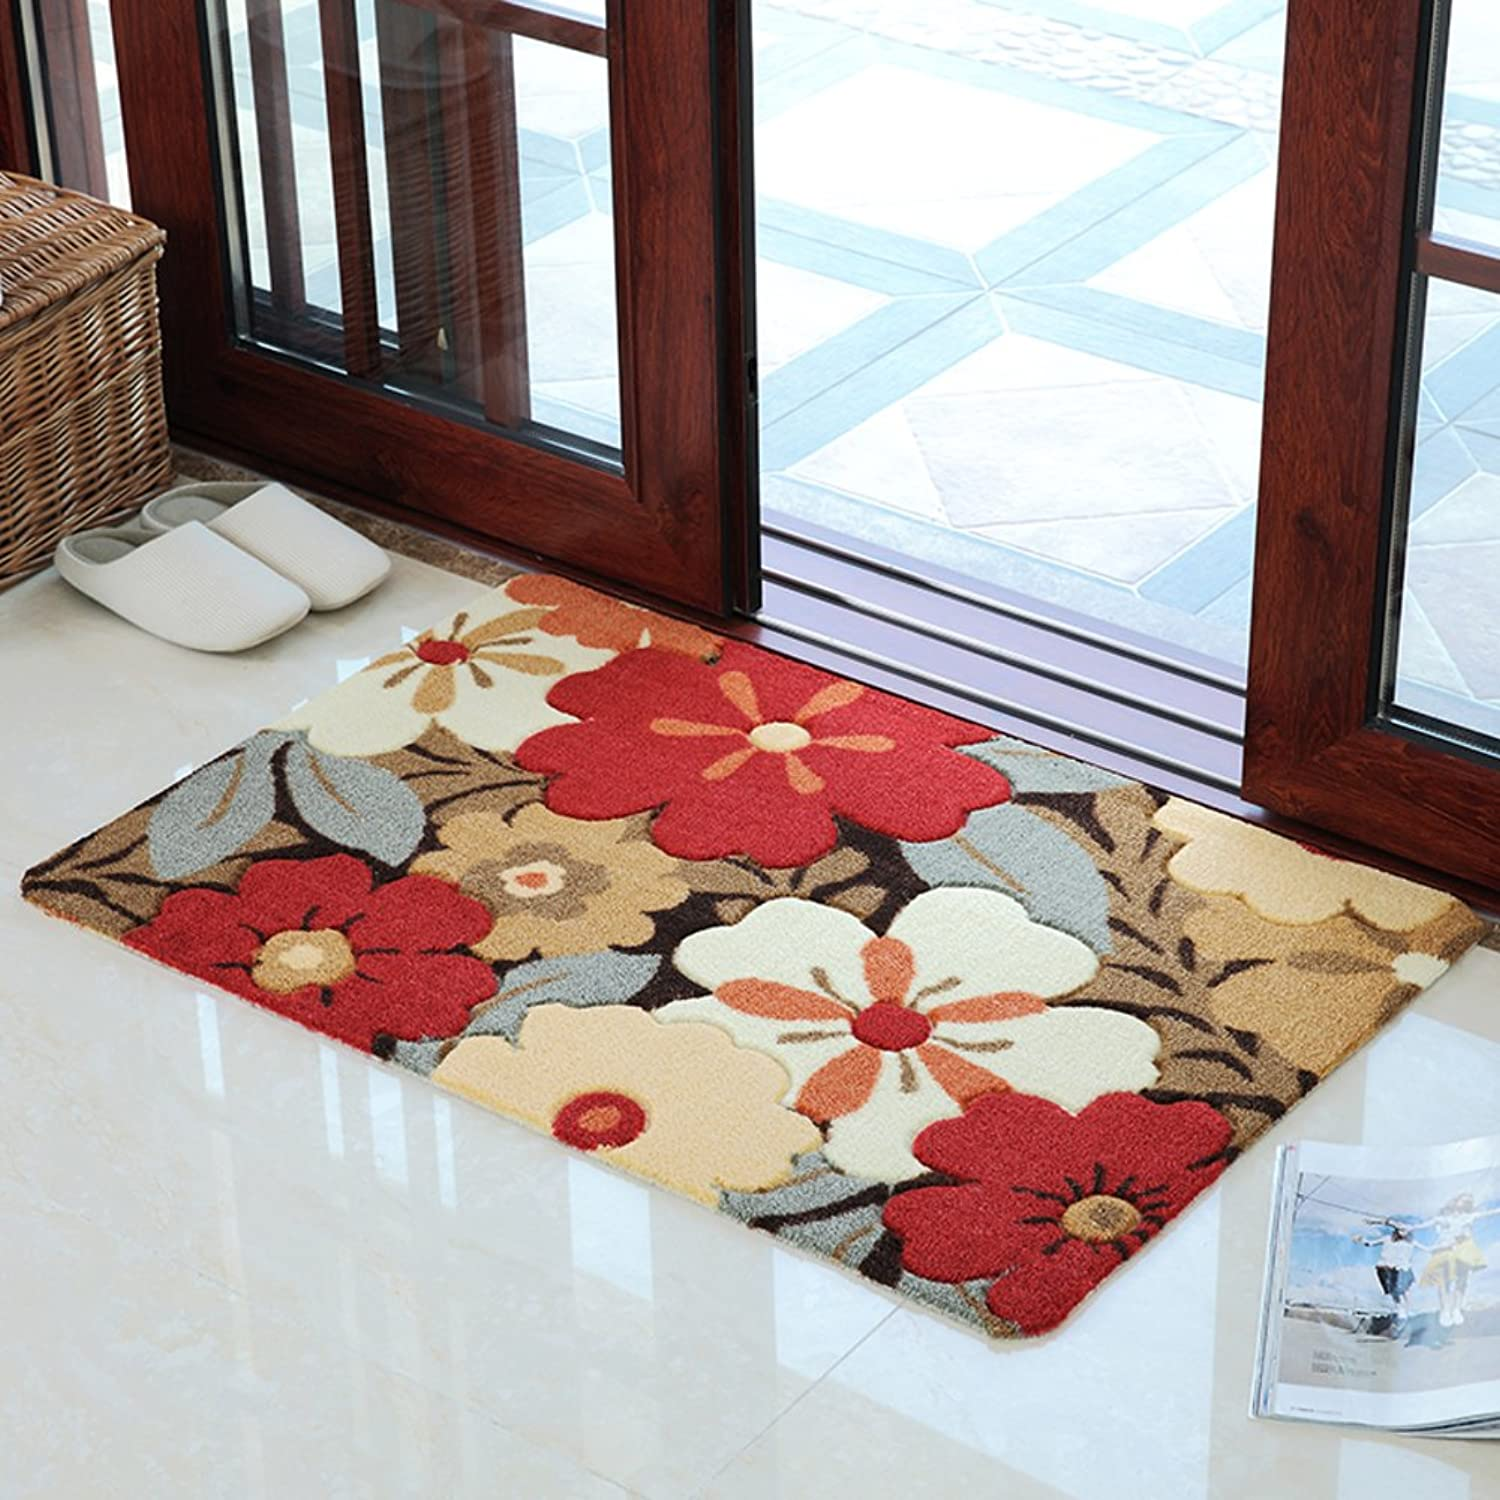 Soft Door Mat, Washable PVC Non-Slip Floor Mat, Entrance Bathroom Kitchen Balcony Corridor, Strong Water Absorption-E 79x118cm(31x46inch)